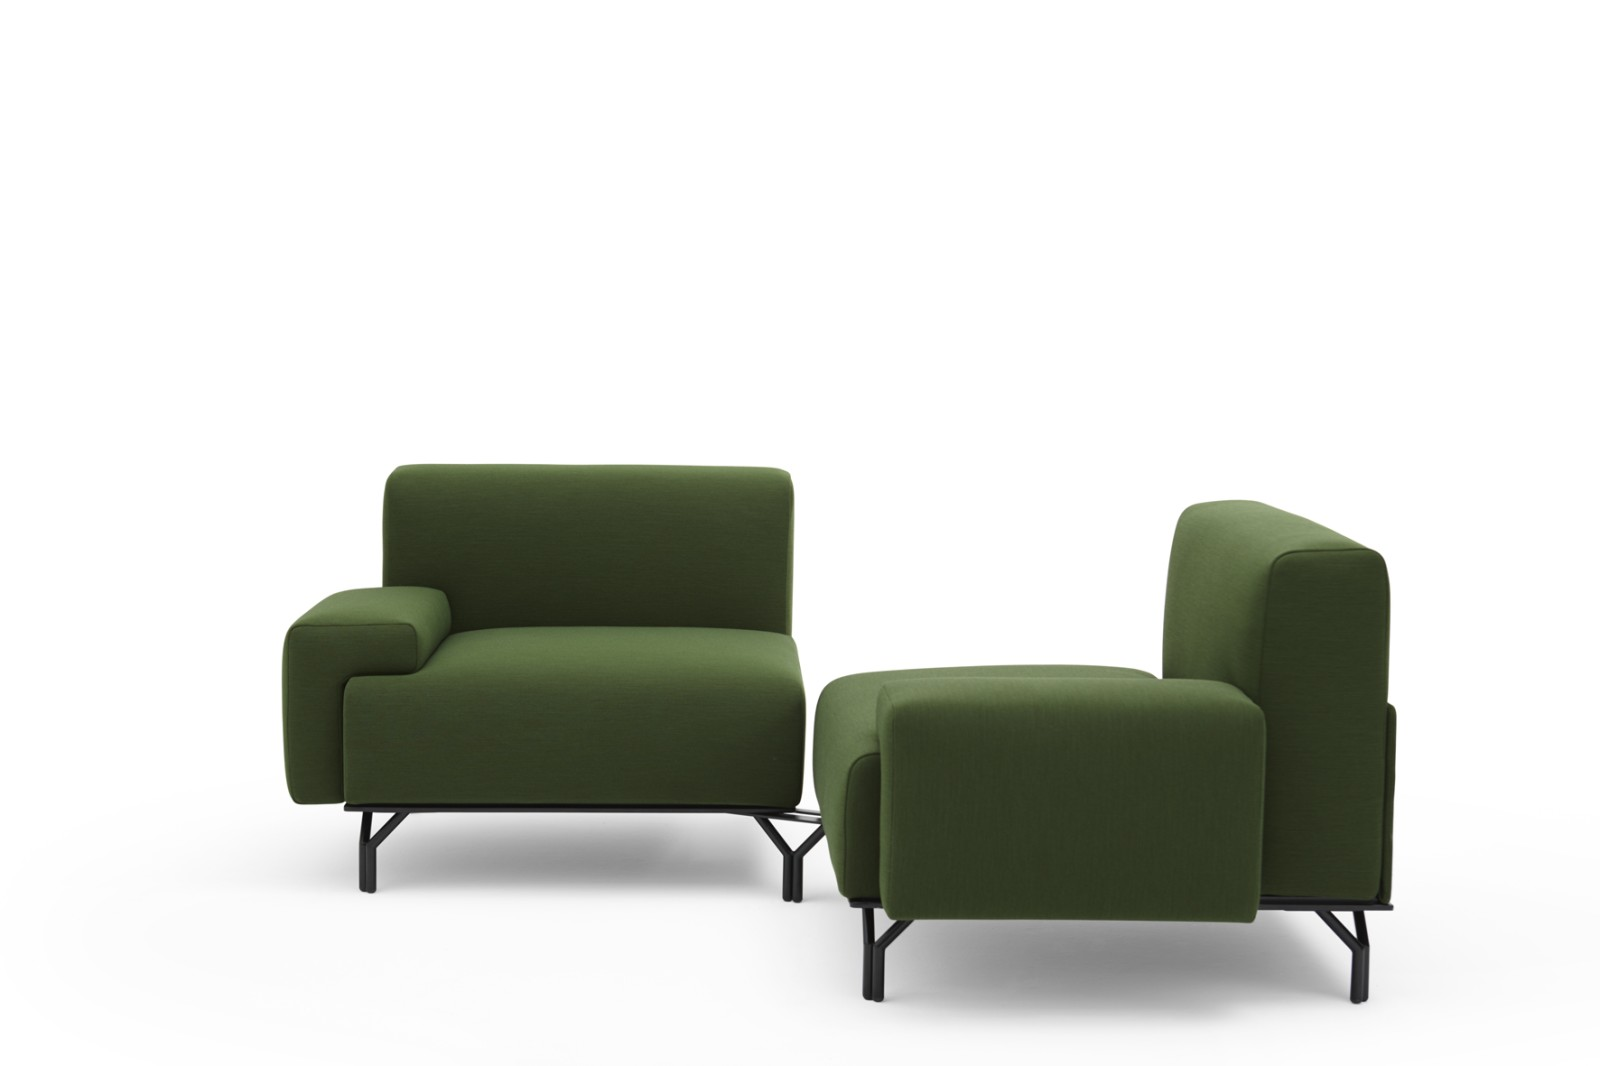 Summit Jointed Removable 2 Seat Sofa A2590 - Extrema/AU 1550 green